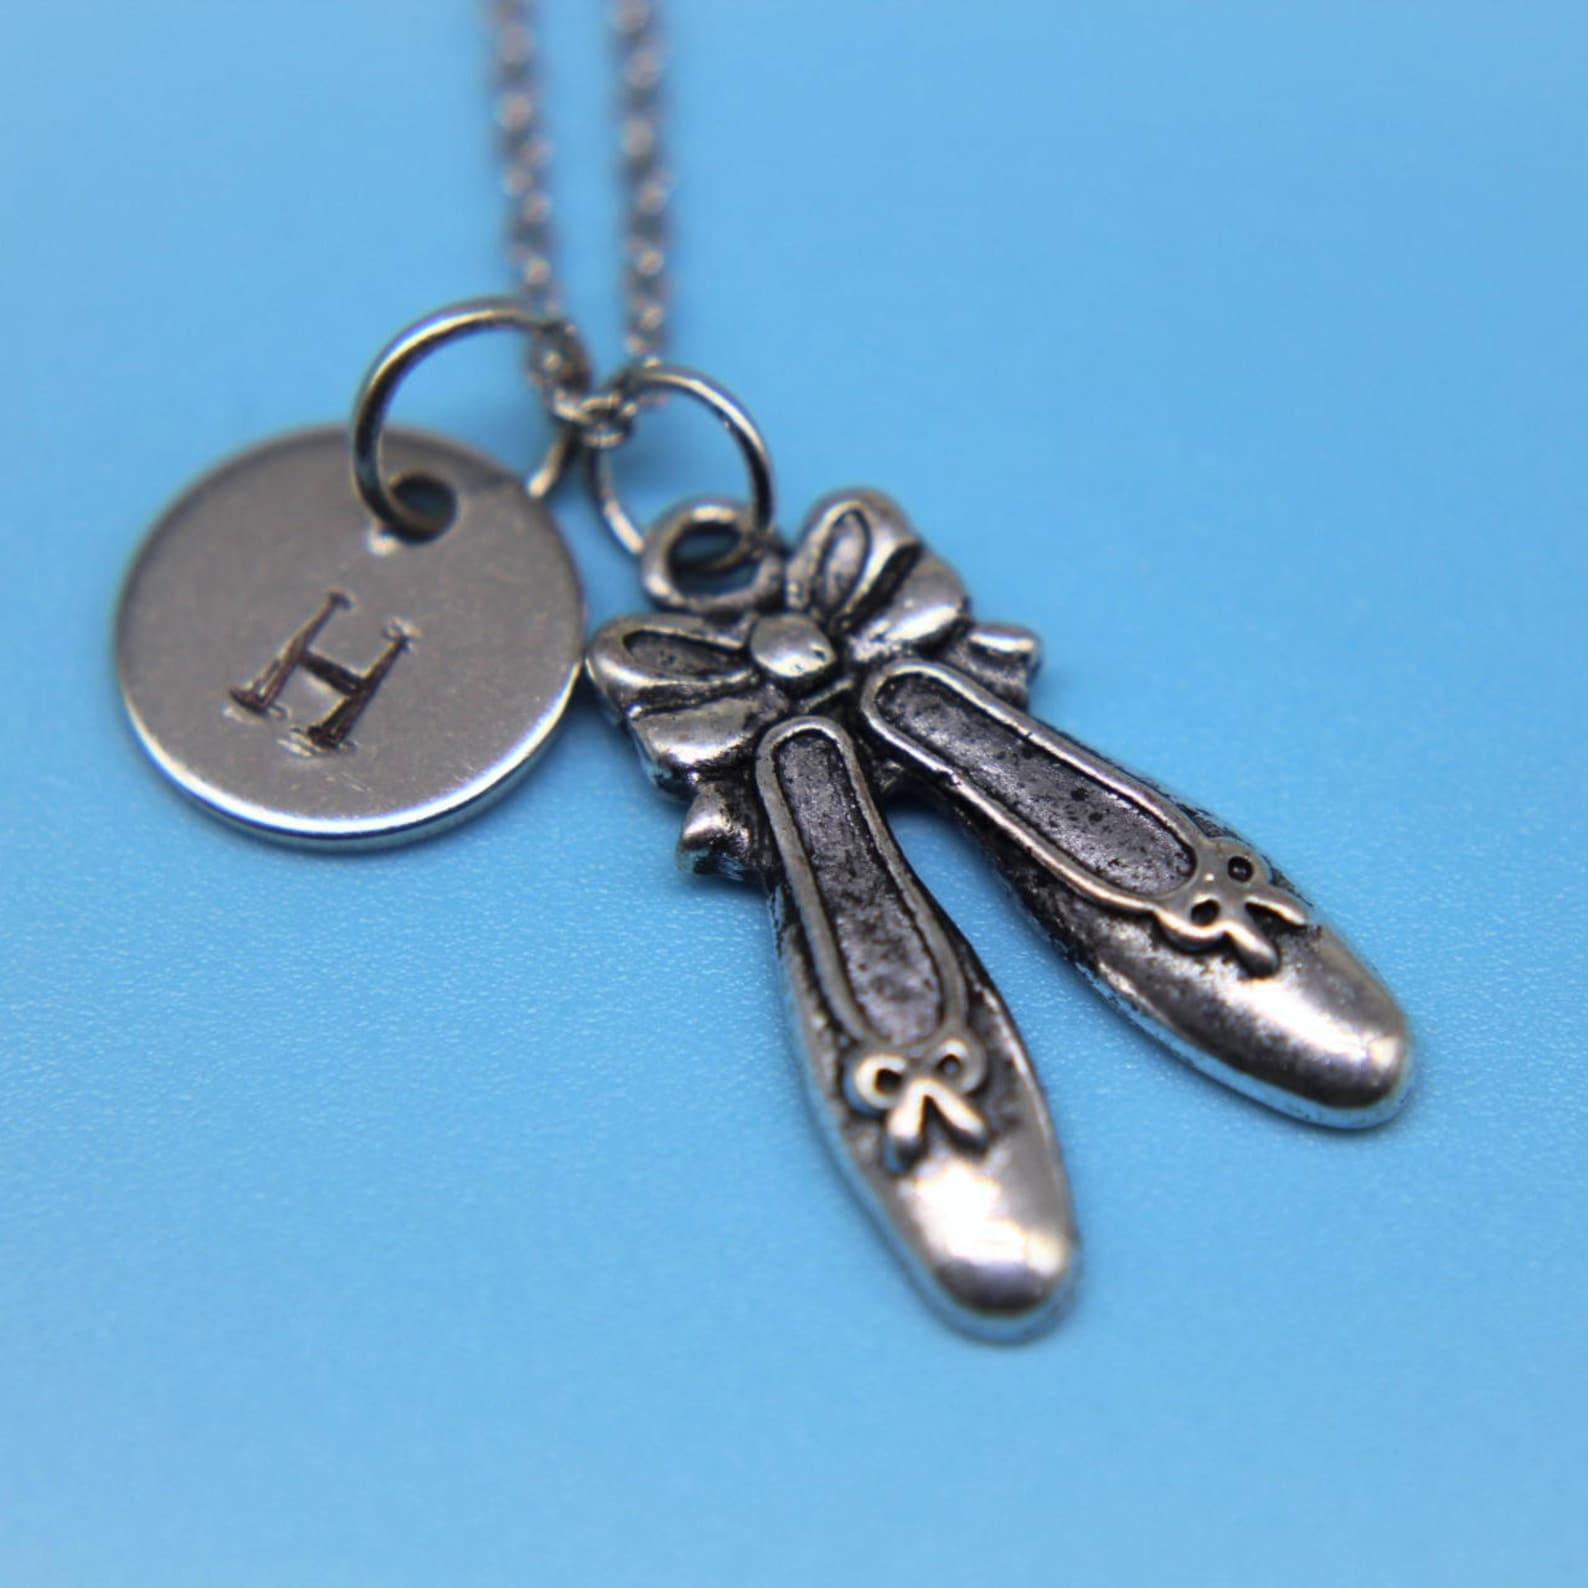 silver ballet shoes charm necklace dance charm personalized necklace initial charm initial nceklace customized jewelry